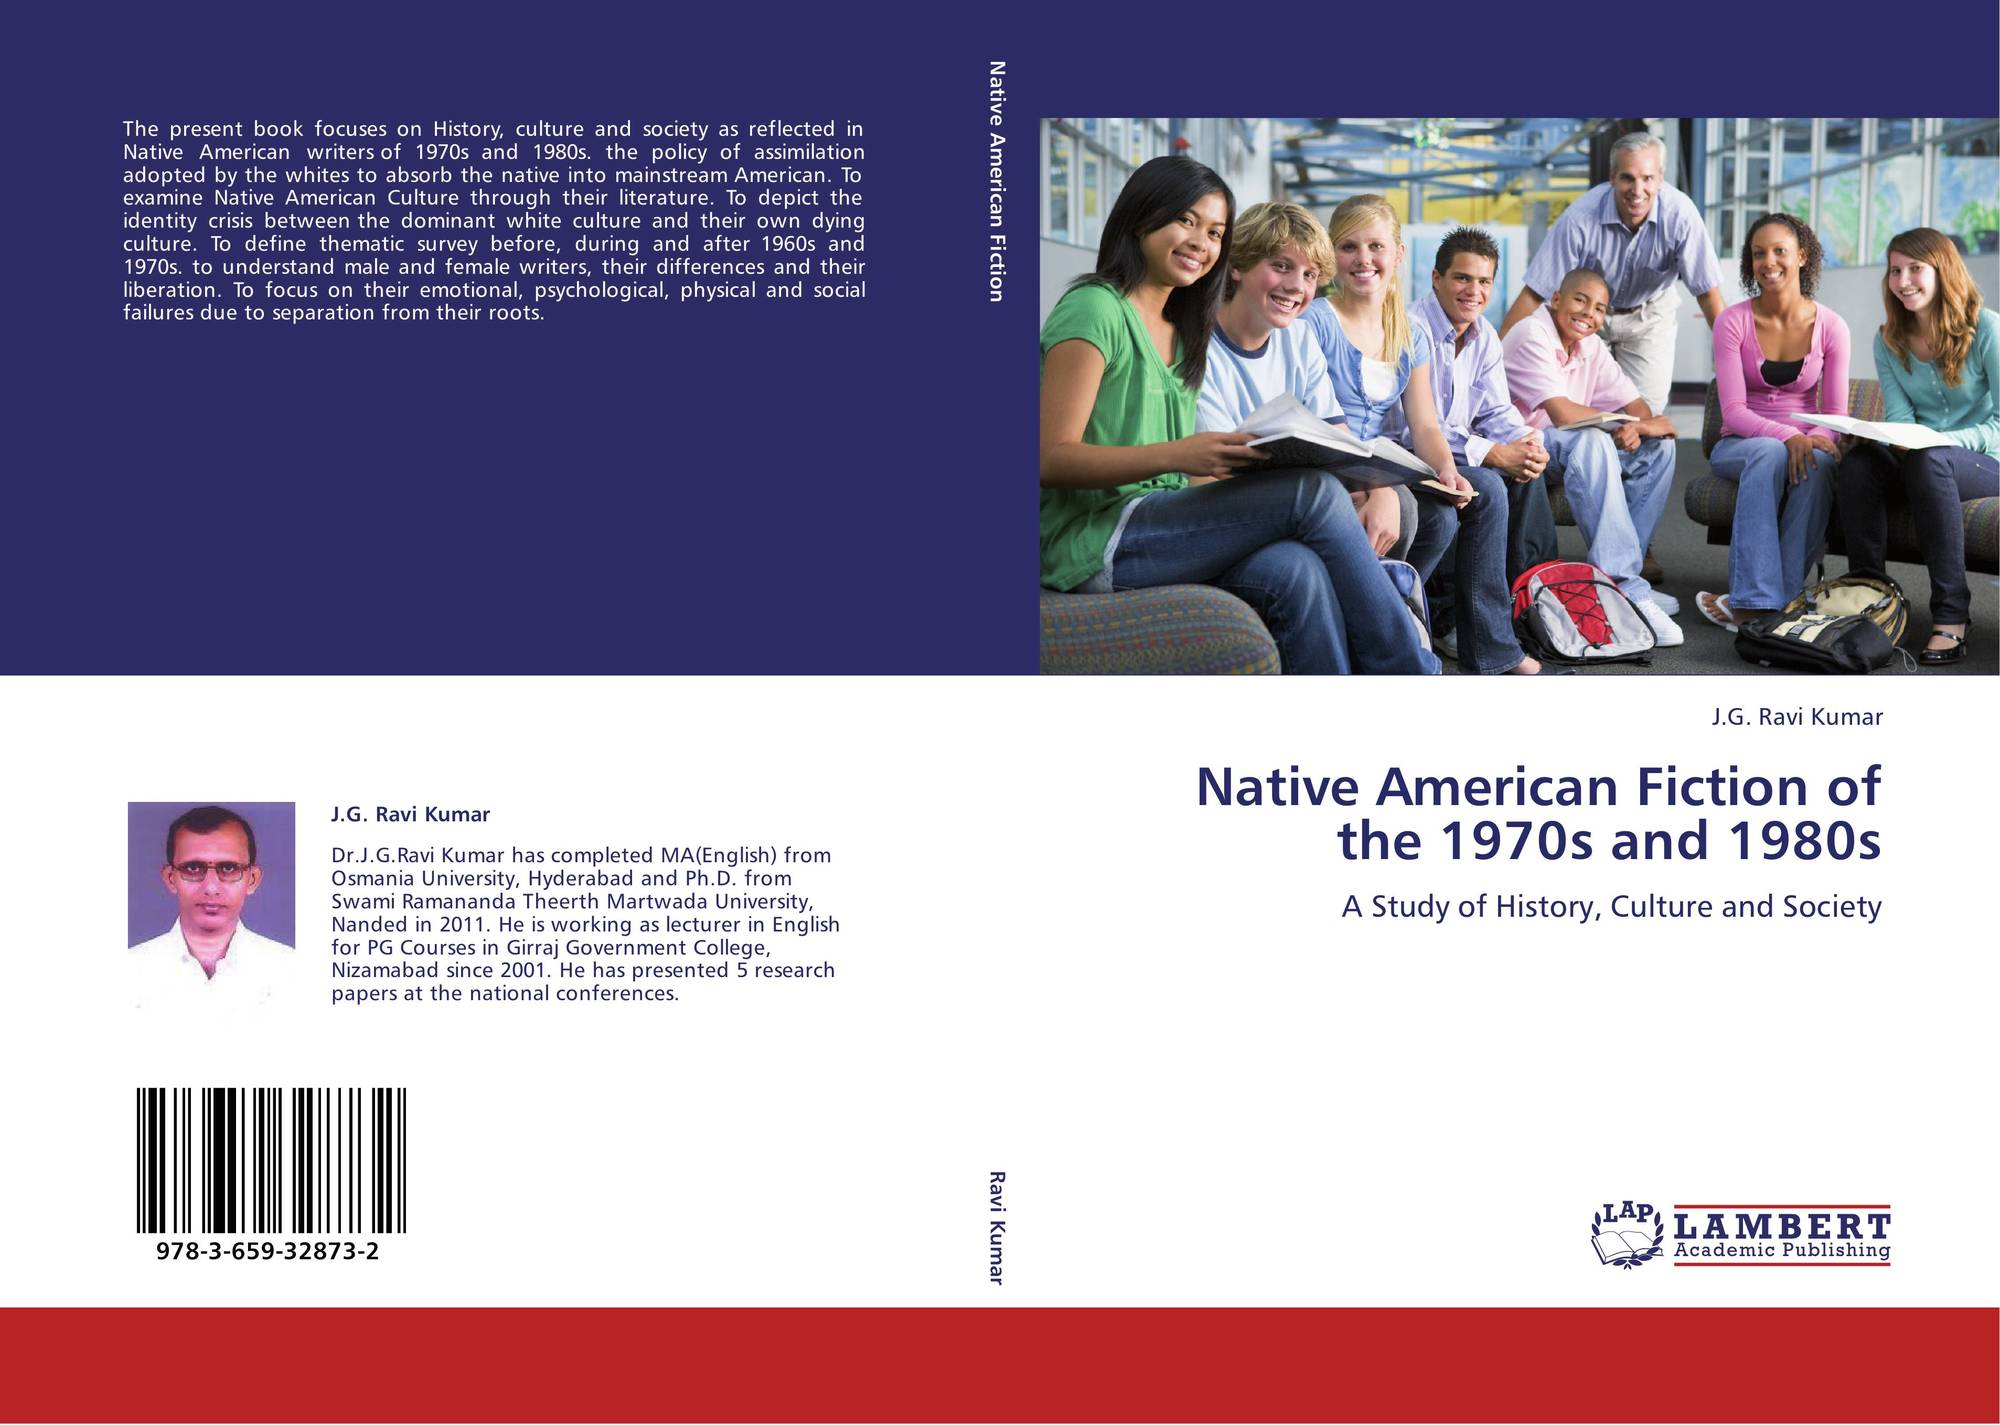 the political realignment of the nation during the late 1970s and early 1980s essay In the late 1960s and early 1970s fully in the social and political upheaval that overtook the nation in the new georgia encyclopedia 28 march.